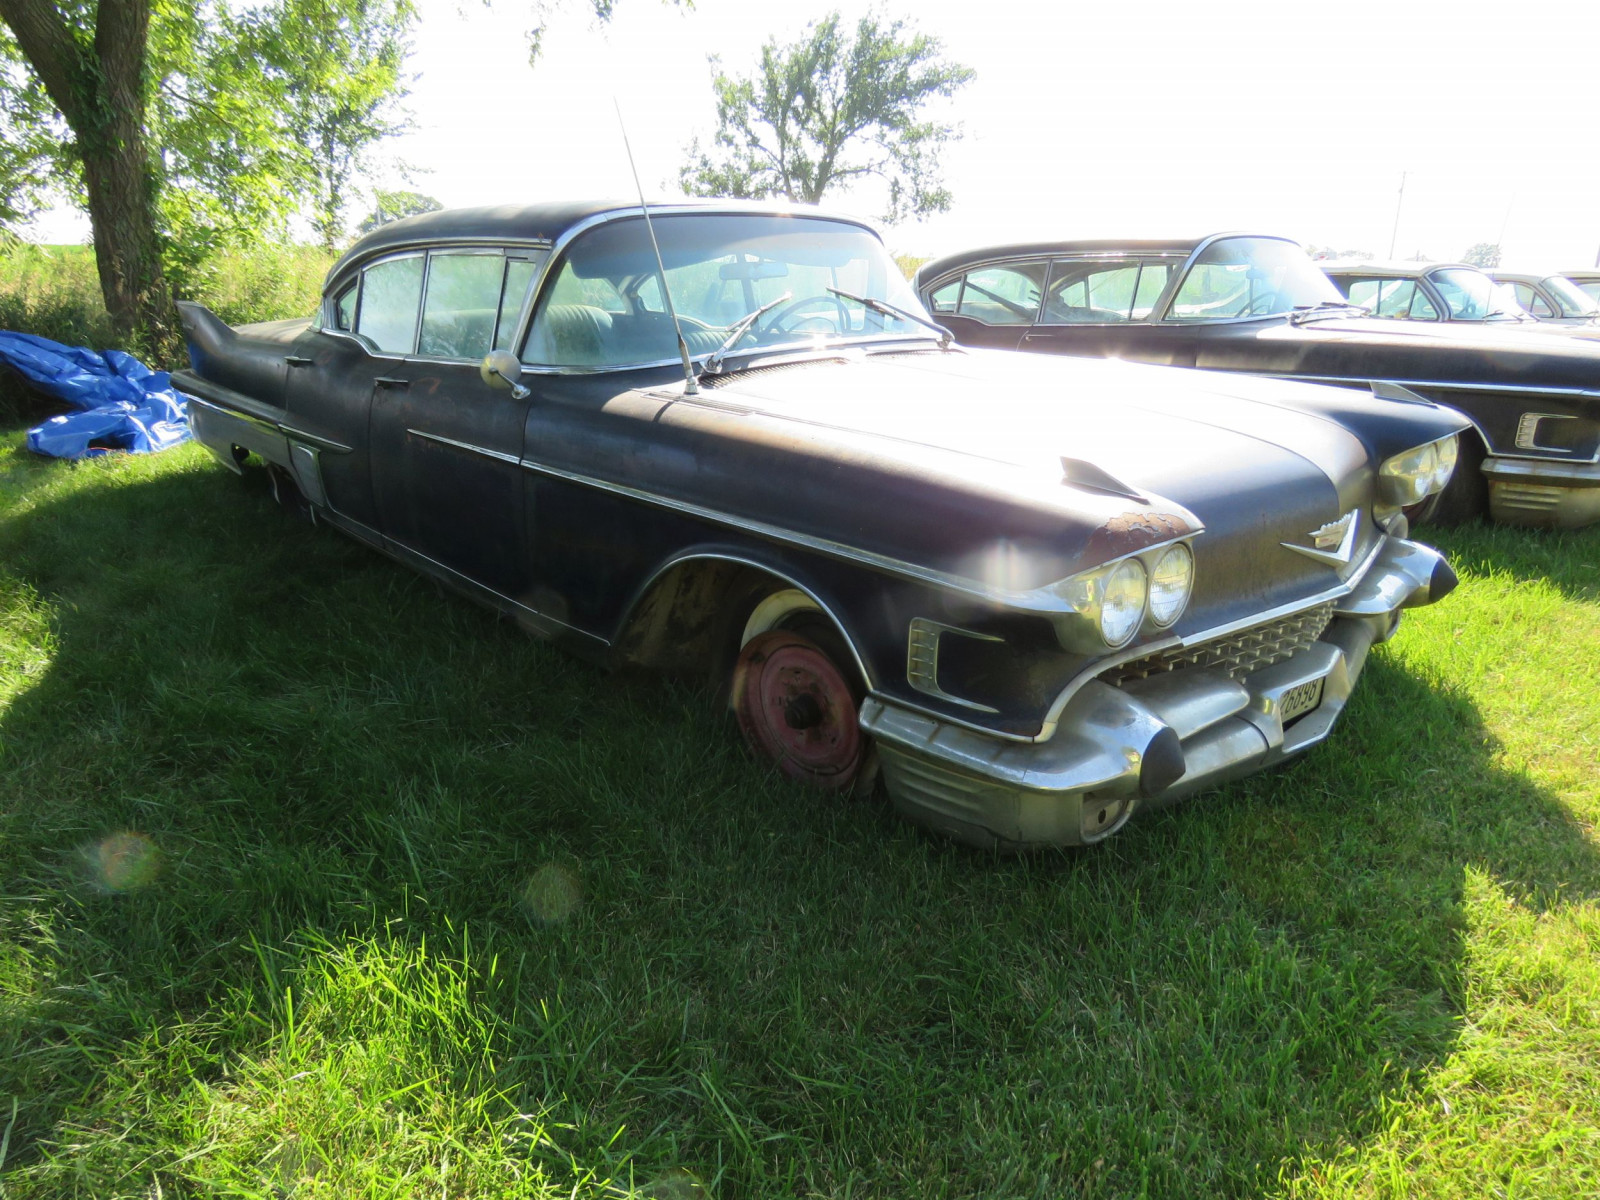 1958 Cadillac Fleetwood 60 Series 4dr HT - Image 3